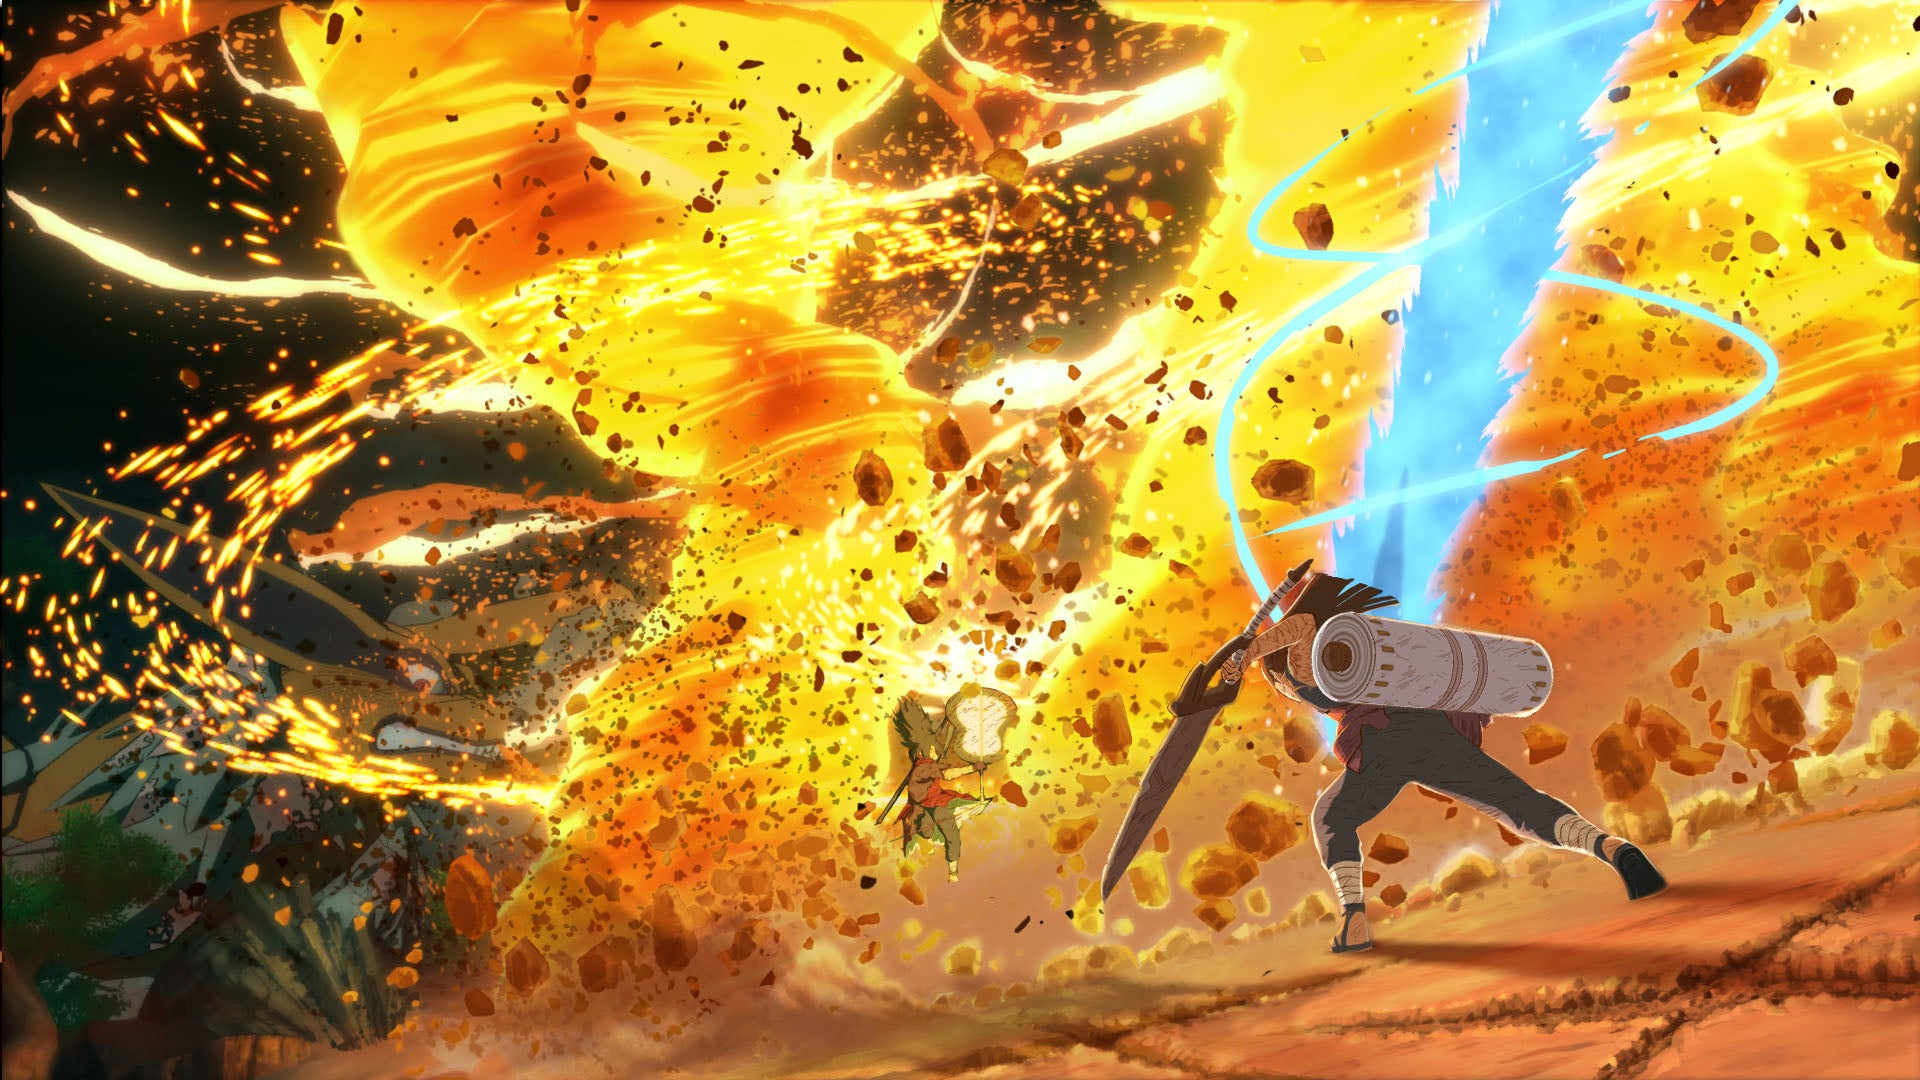 Naruto's Next Ultimate Ninja Storm Targets PS4 And Xbox One